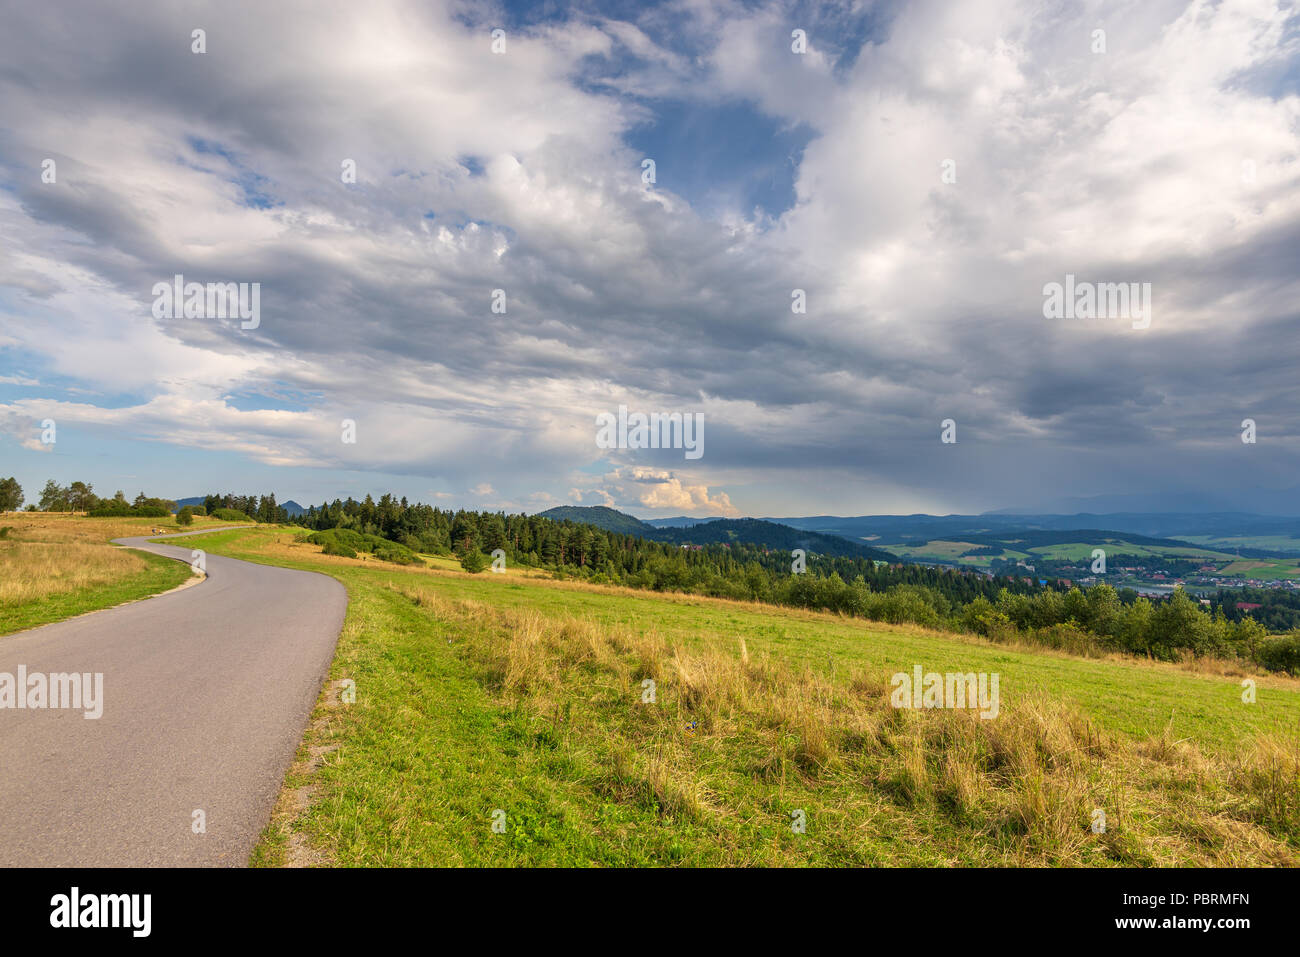 Rural scenery. Fields, mountains and clouds on the sky. Pieniny National Park. Malopolska, Poland. - Stock Image